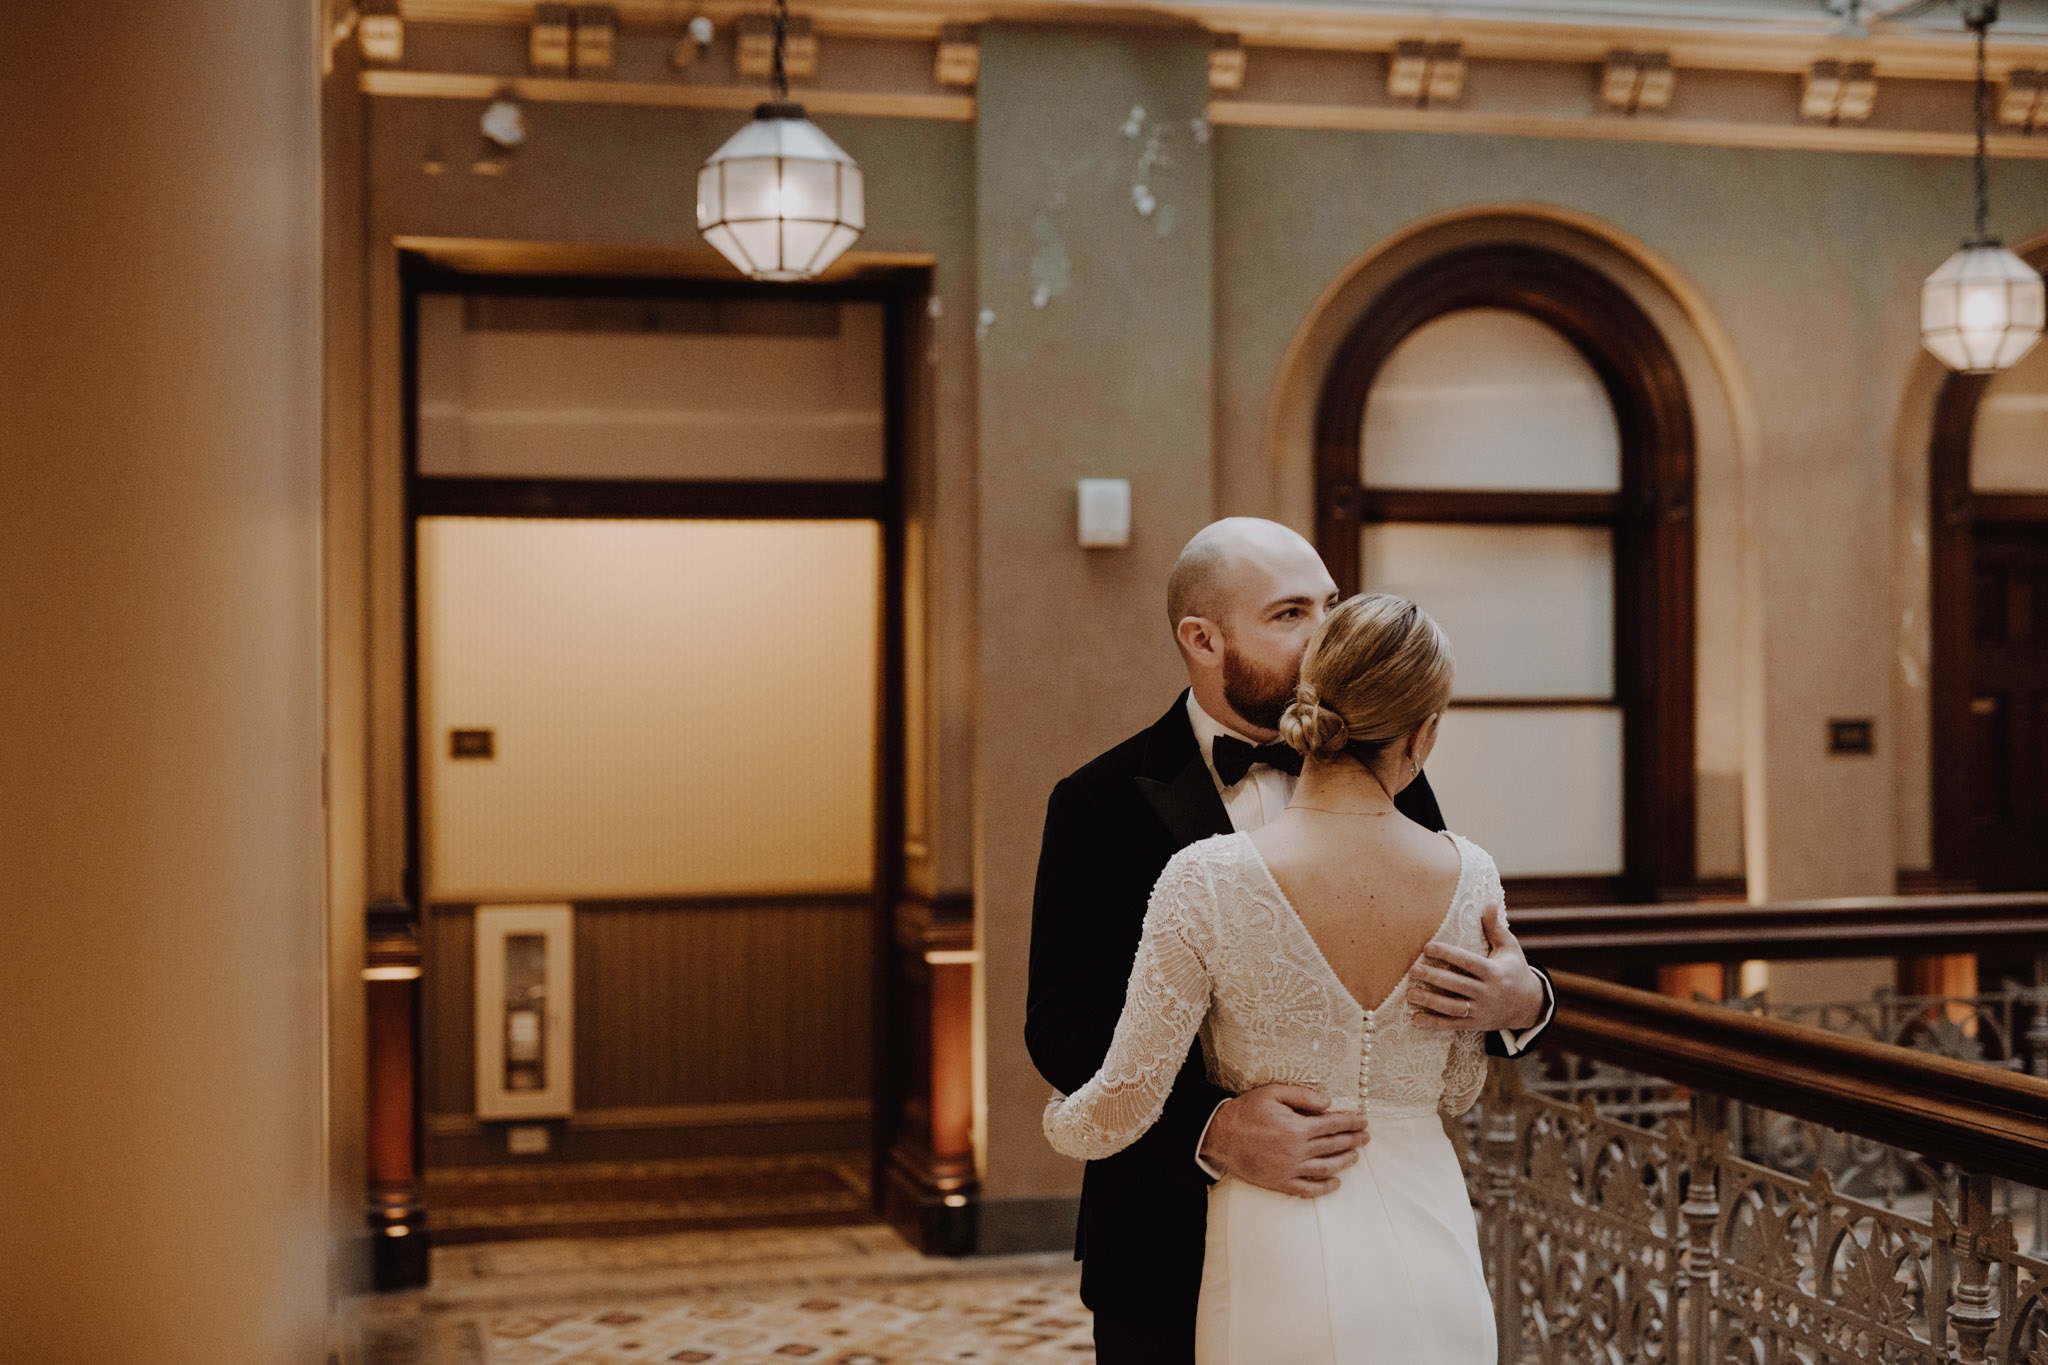 Downtown NYC Wedding - The Beekman Hotel - first look embrace